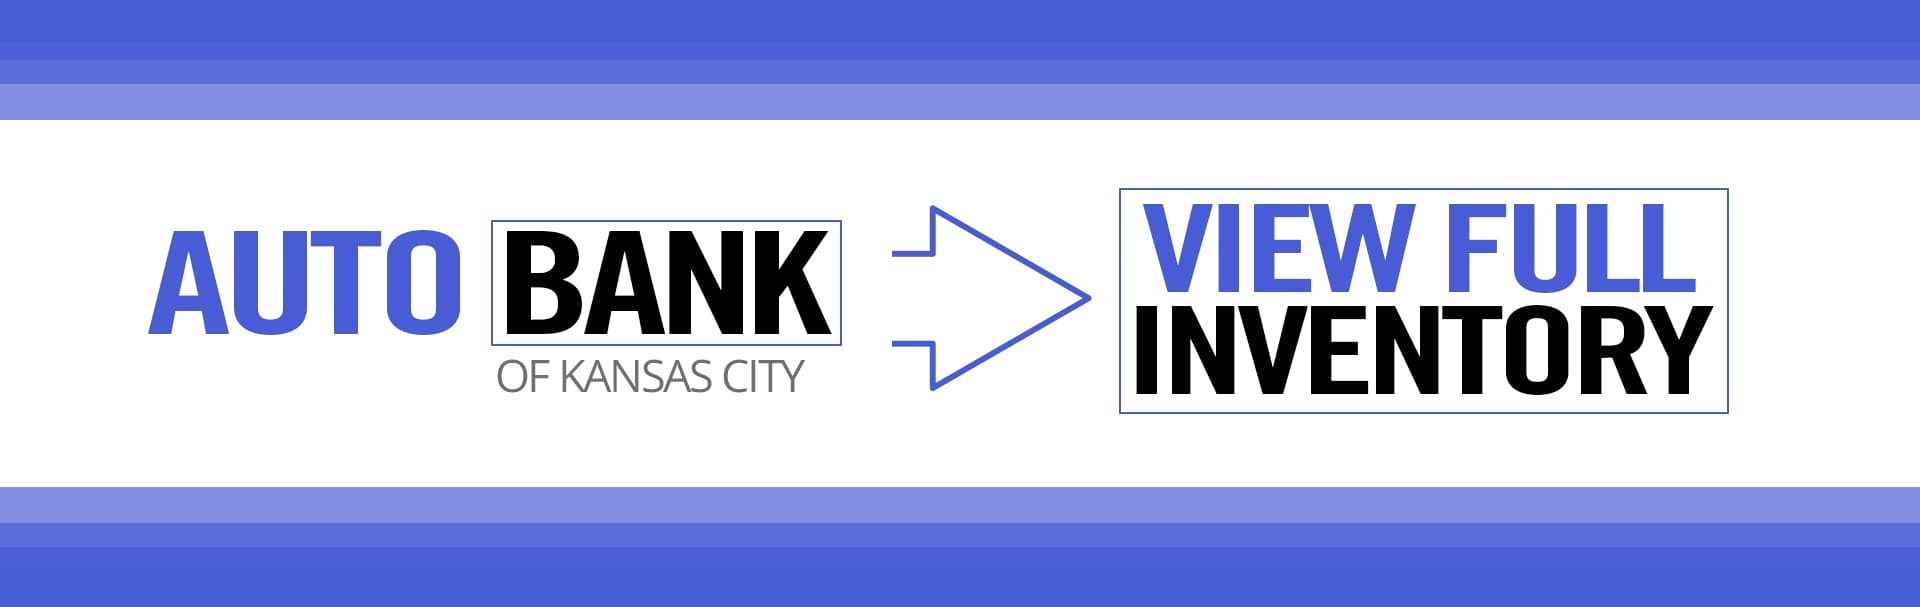 View All Inventory at Auto Bank of Kansas City